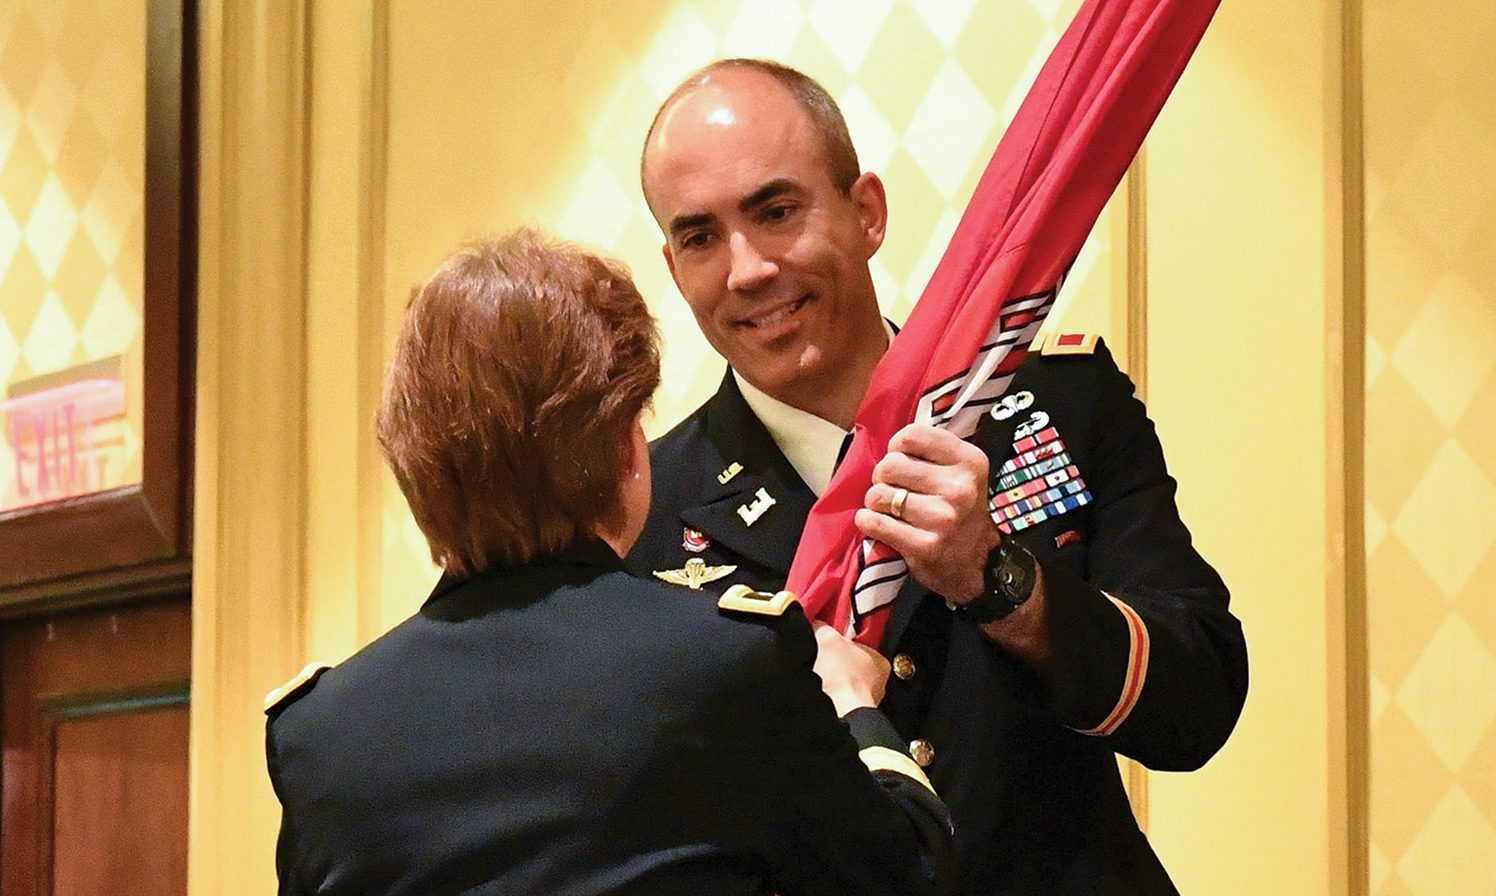 Col. Sebastien Joly receives the U.S. Army Corps of Engineers flag from Brig. Gen. Diana Holland during the Mobile Engineer District change-of-command ceremony. Joly became the 53rd commander of the Mobile District. (Corps of Engineers photo by Chuck Walker)